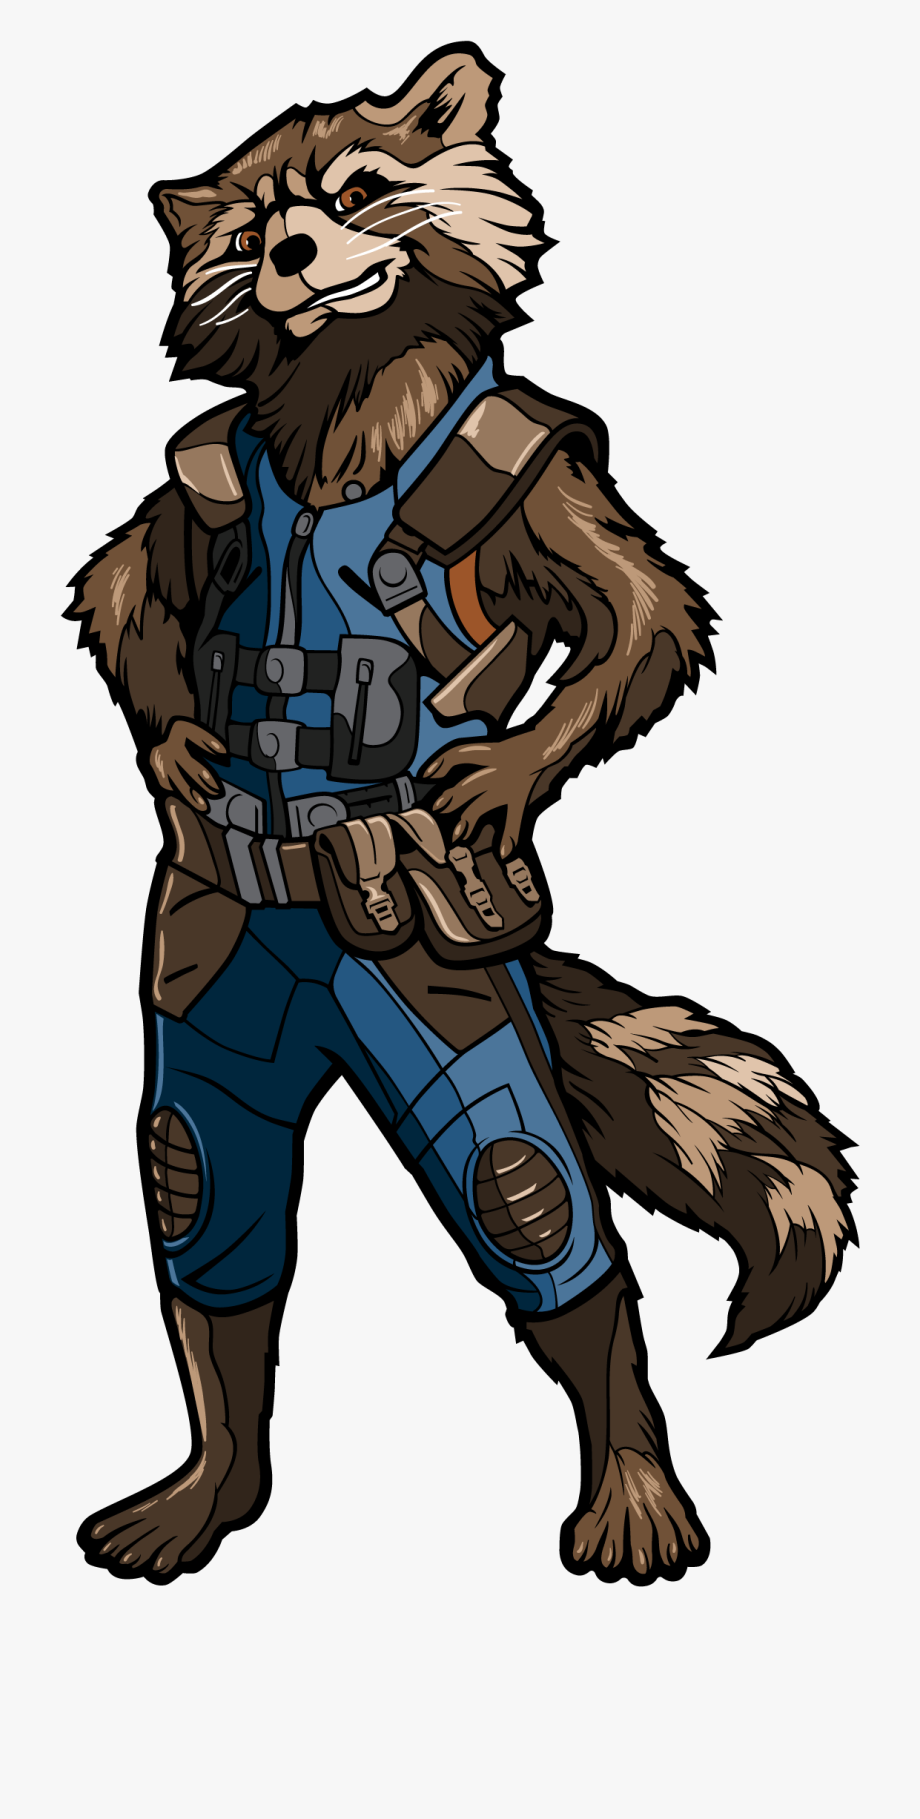 Rocket Raccoon From Endgame, Cliparts & Cartoons.